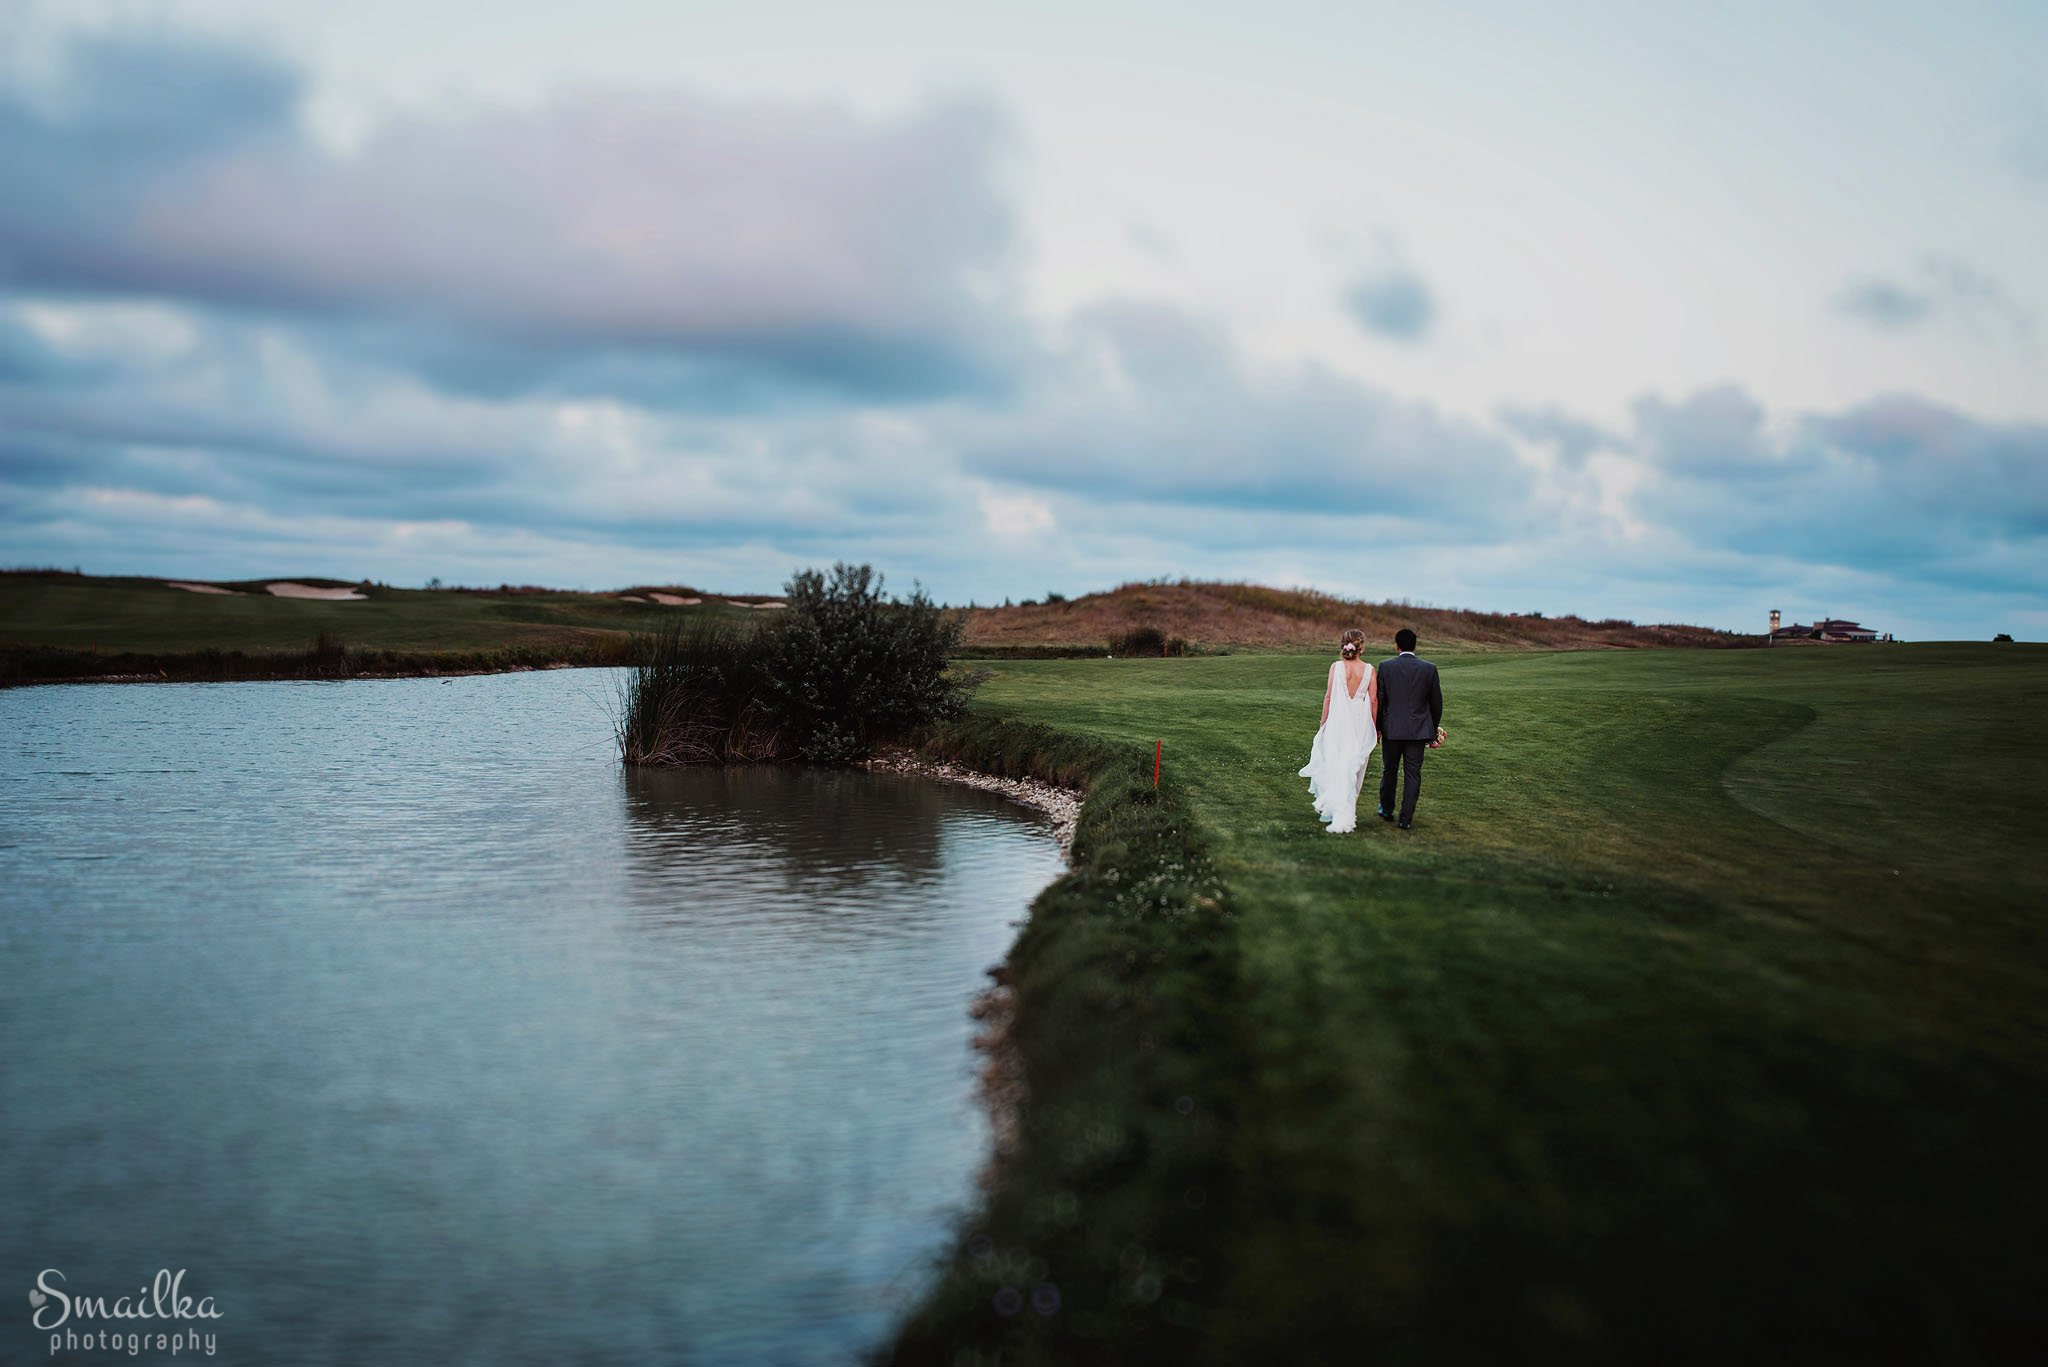 Bride and groom walking the green fields of Black Sea Rama